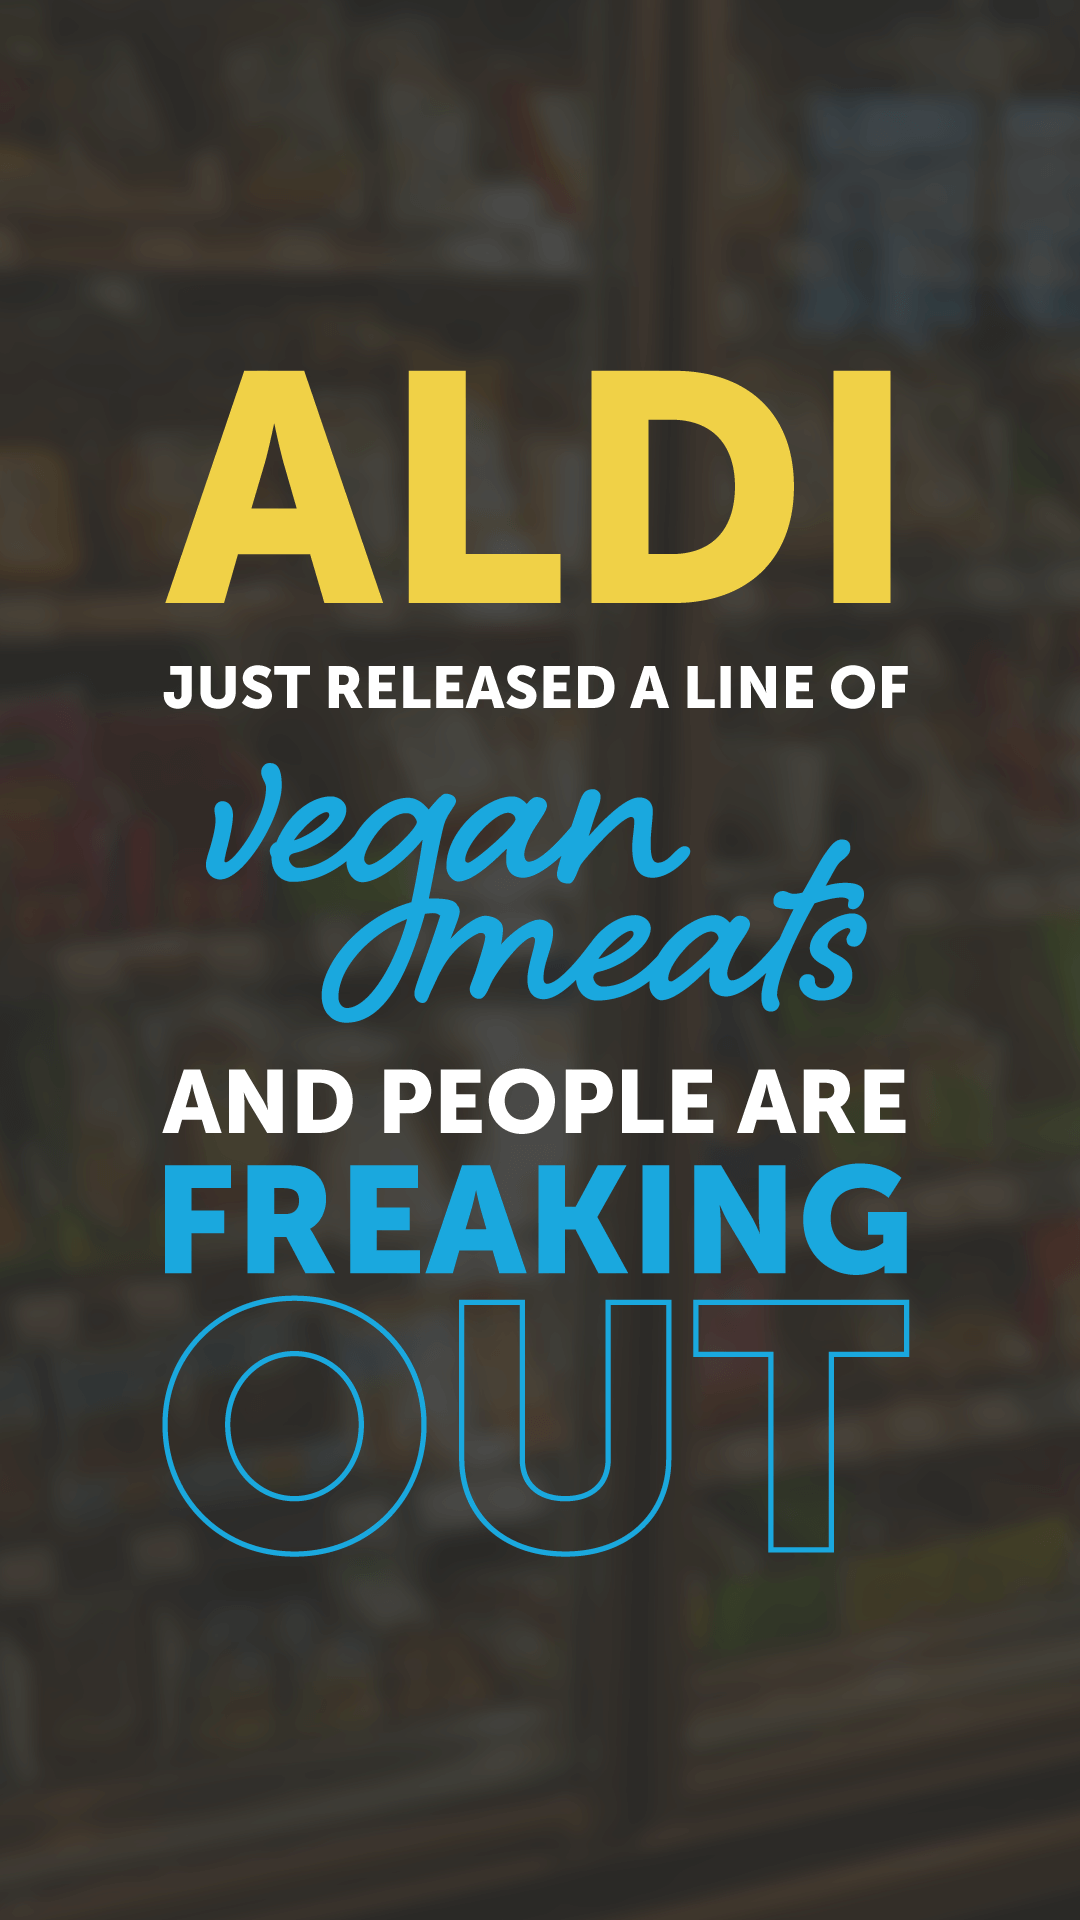 Aldi Just Released a Line of Vegan Meats and People Are Freaking Out